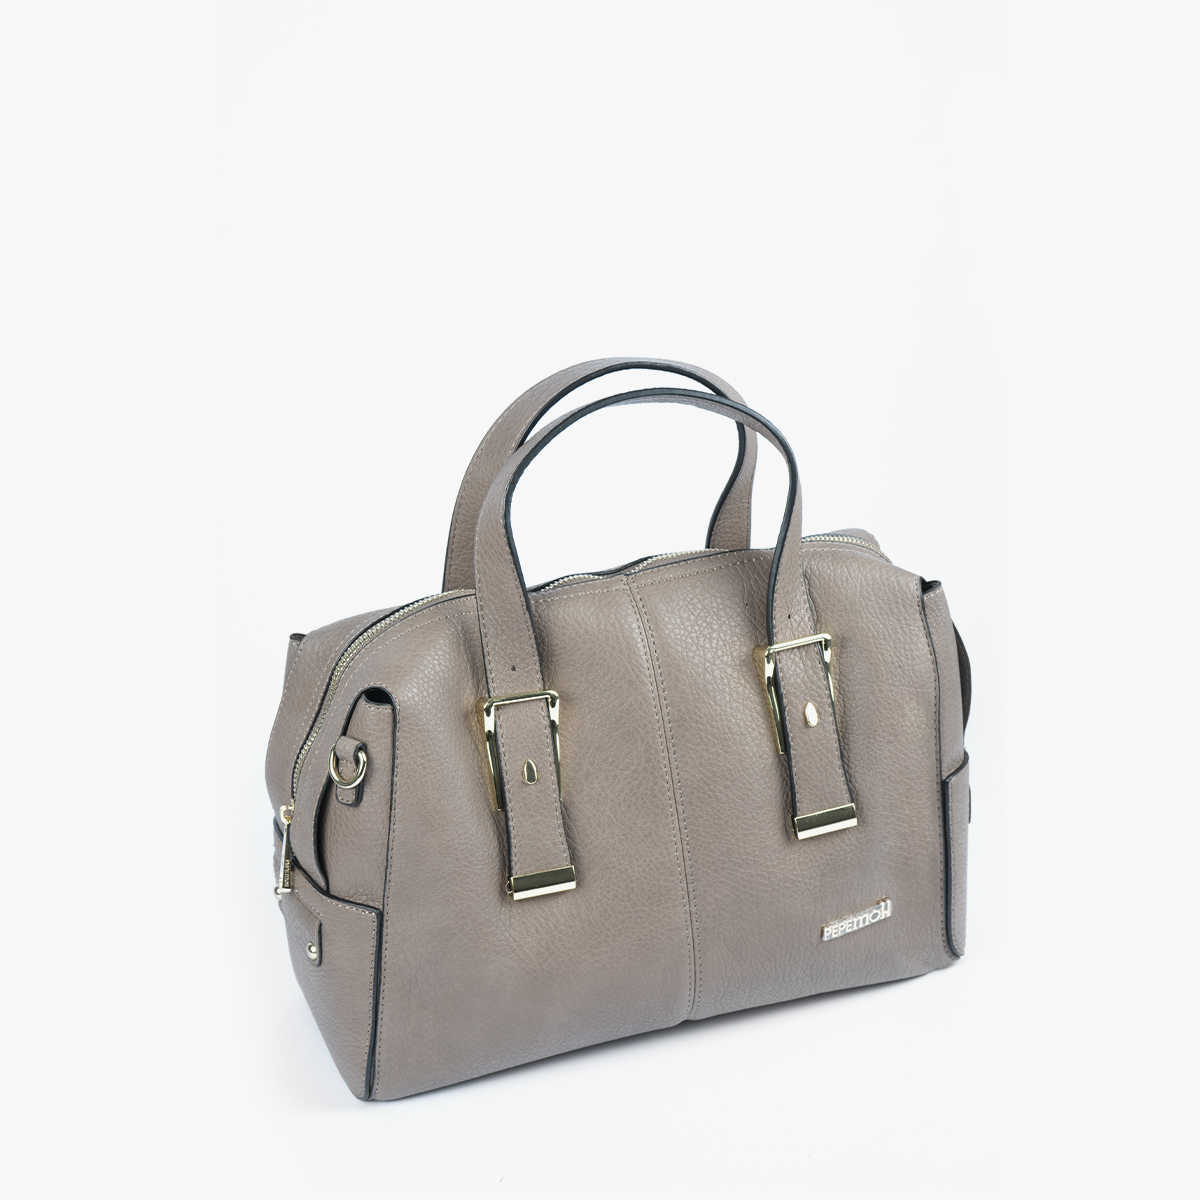 41122 mirage taupe perfil